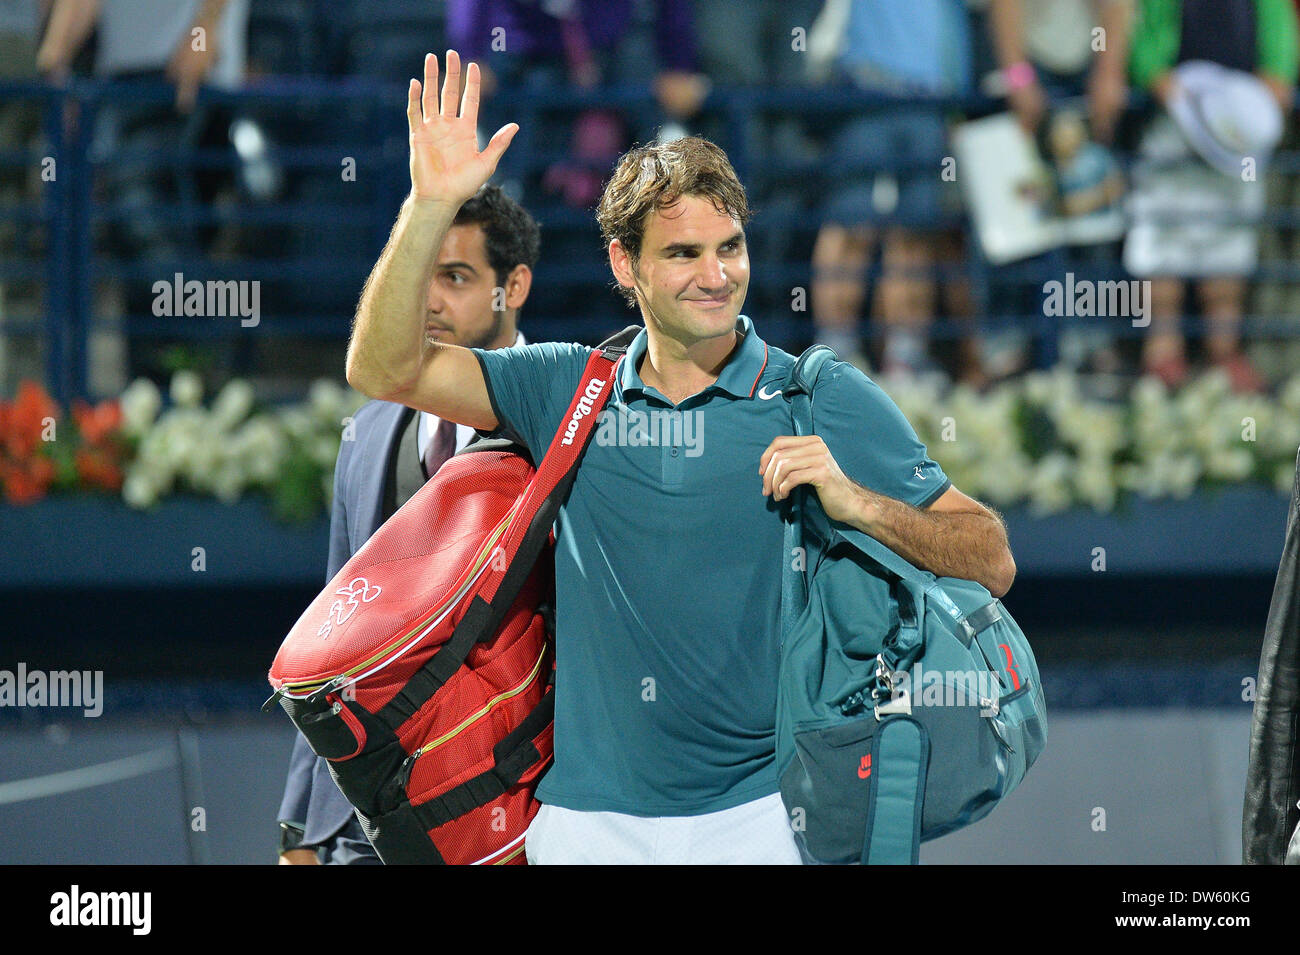 DUBAI, UAE, 27th Feb 2014. Roger Federer waves to the crowd after a his victory against Novak Djokovic in the quarterfinals of the Dubai Duty Free Tennis Championships. Federer advanced to the finals of the tournament with a 3-6 6-3 6-2 victory Credit:  Feroz Khan/Alamy Live News - Stock Image